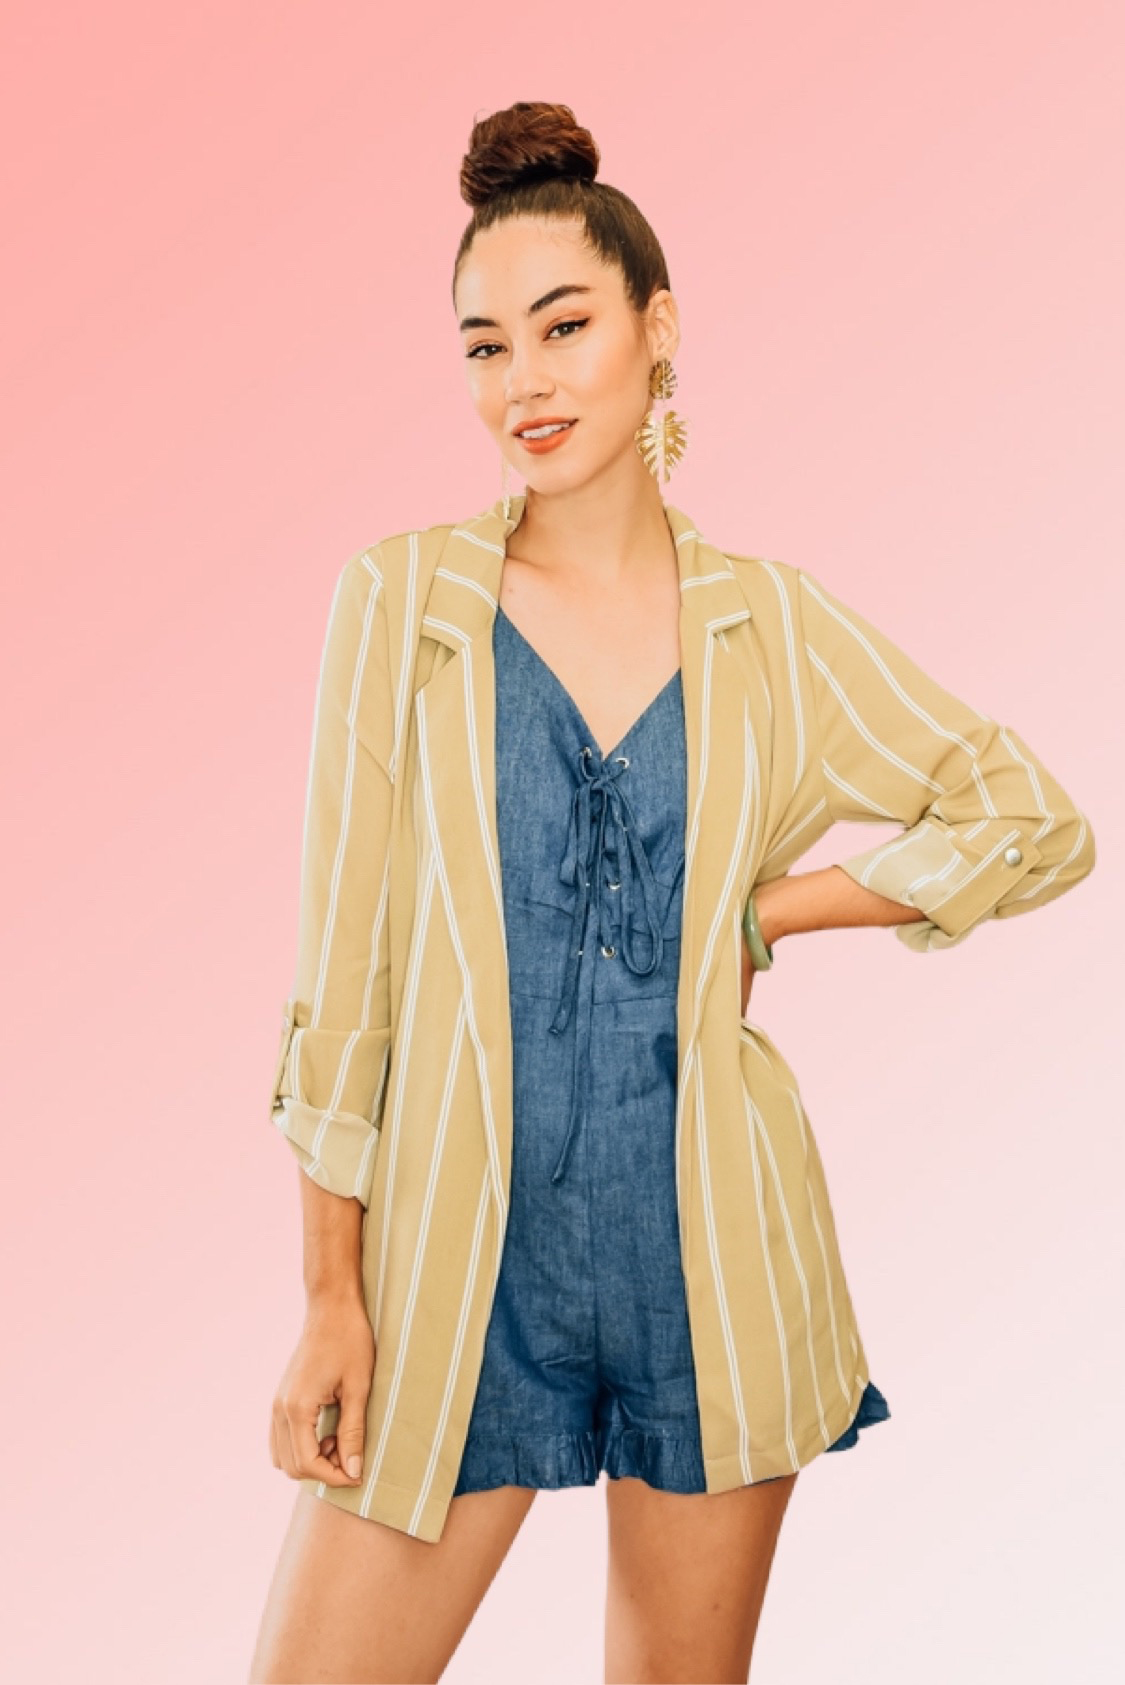 KHAKI PIN STRIPED BLAZER. NOTCHED LAPELS, ¾ SLEEVES WITH ROLL UP TAB BUTTON. BOYFRIEND FIT. 100% POLYESTER. PIPER IS 5'4, SIZE 0 WEARING A SMALL. NIKI IS A SIZE 14, WEARING A SIZE LARGE.  S 0-4 M 6-10 L 12-14